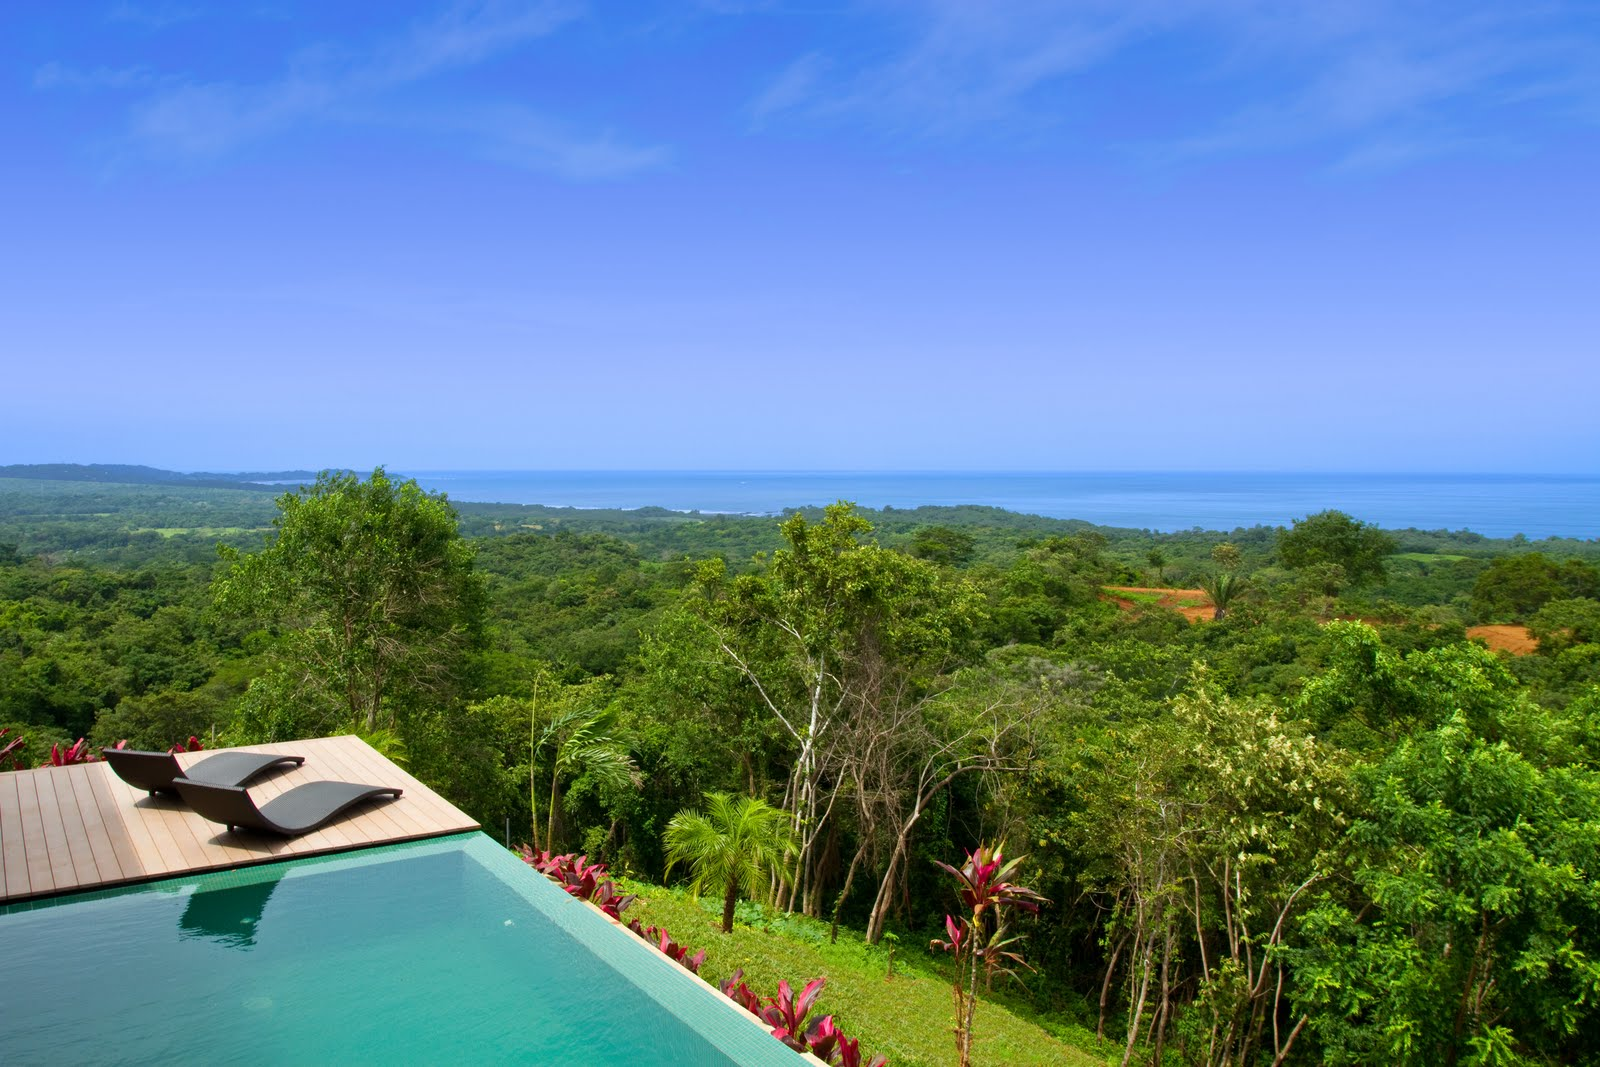 Jet luxury resorts costa rica vacation rental houses for Luxury vacation costa rica